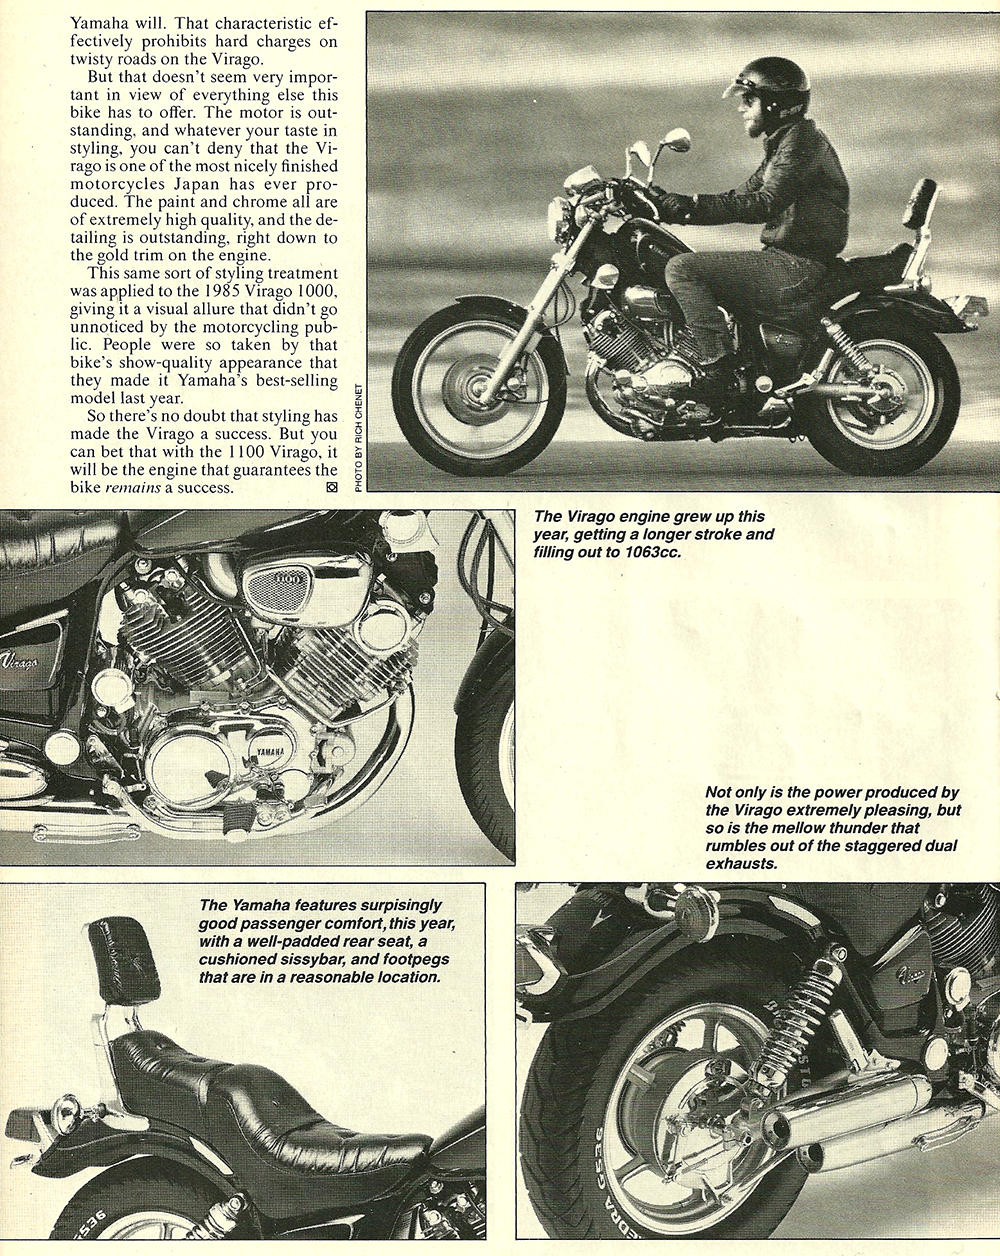 1986 Yamaha Virago 1100 road test 03.jpg